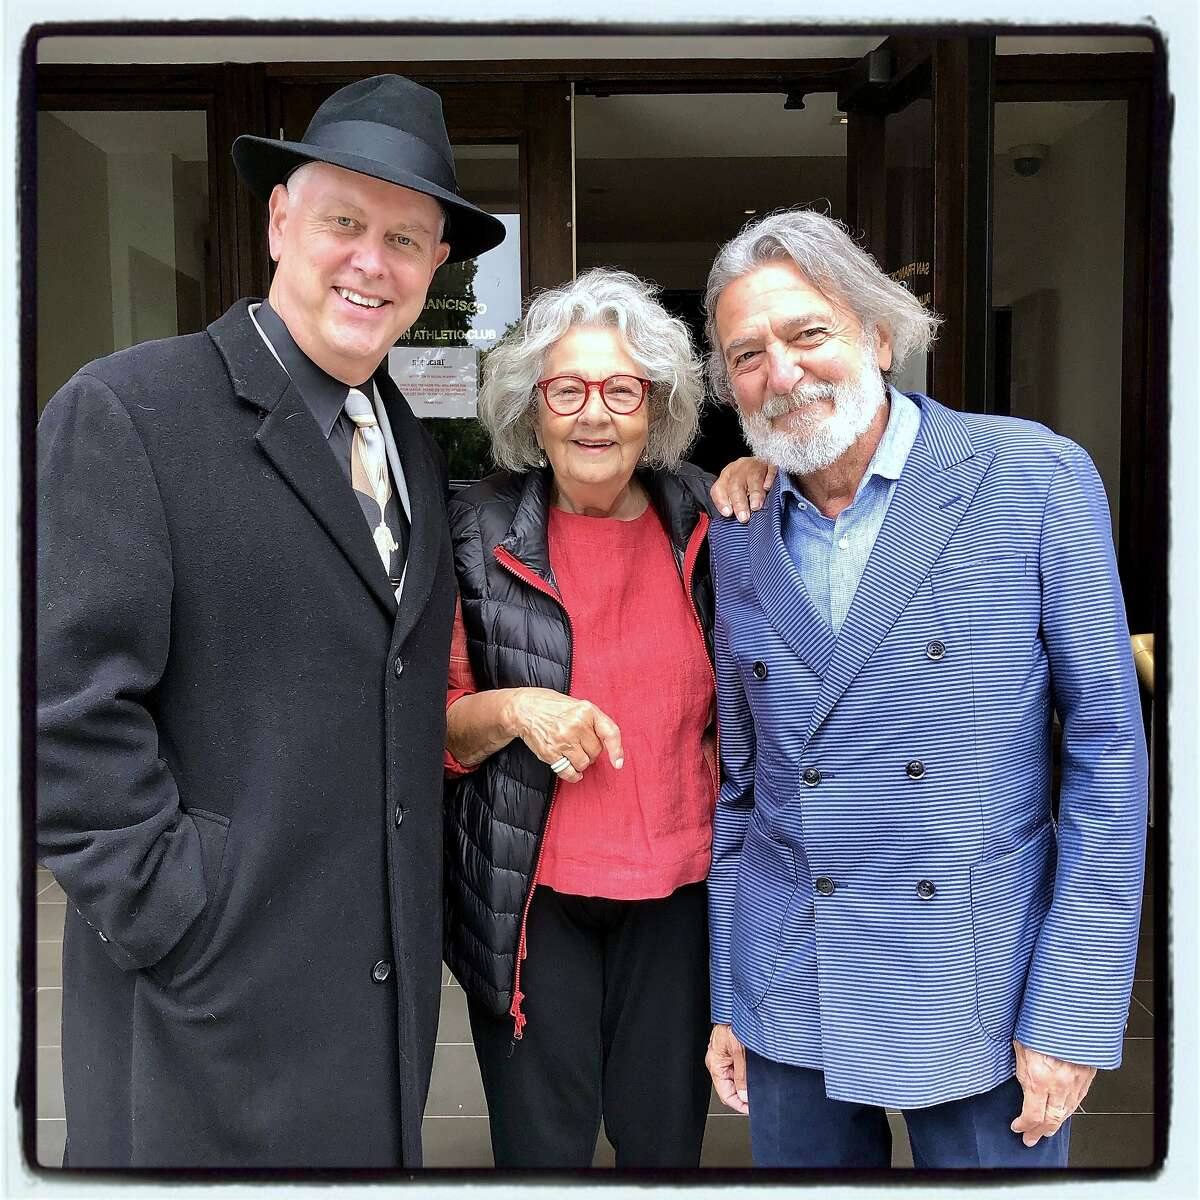 Noir Czar Eddie Muller (left) with Jeannette Etheredge and actor Don Novello at the Litquake